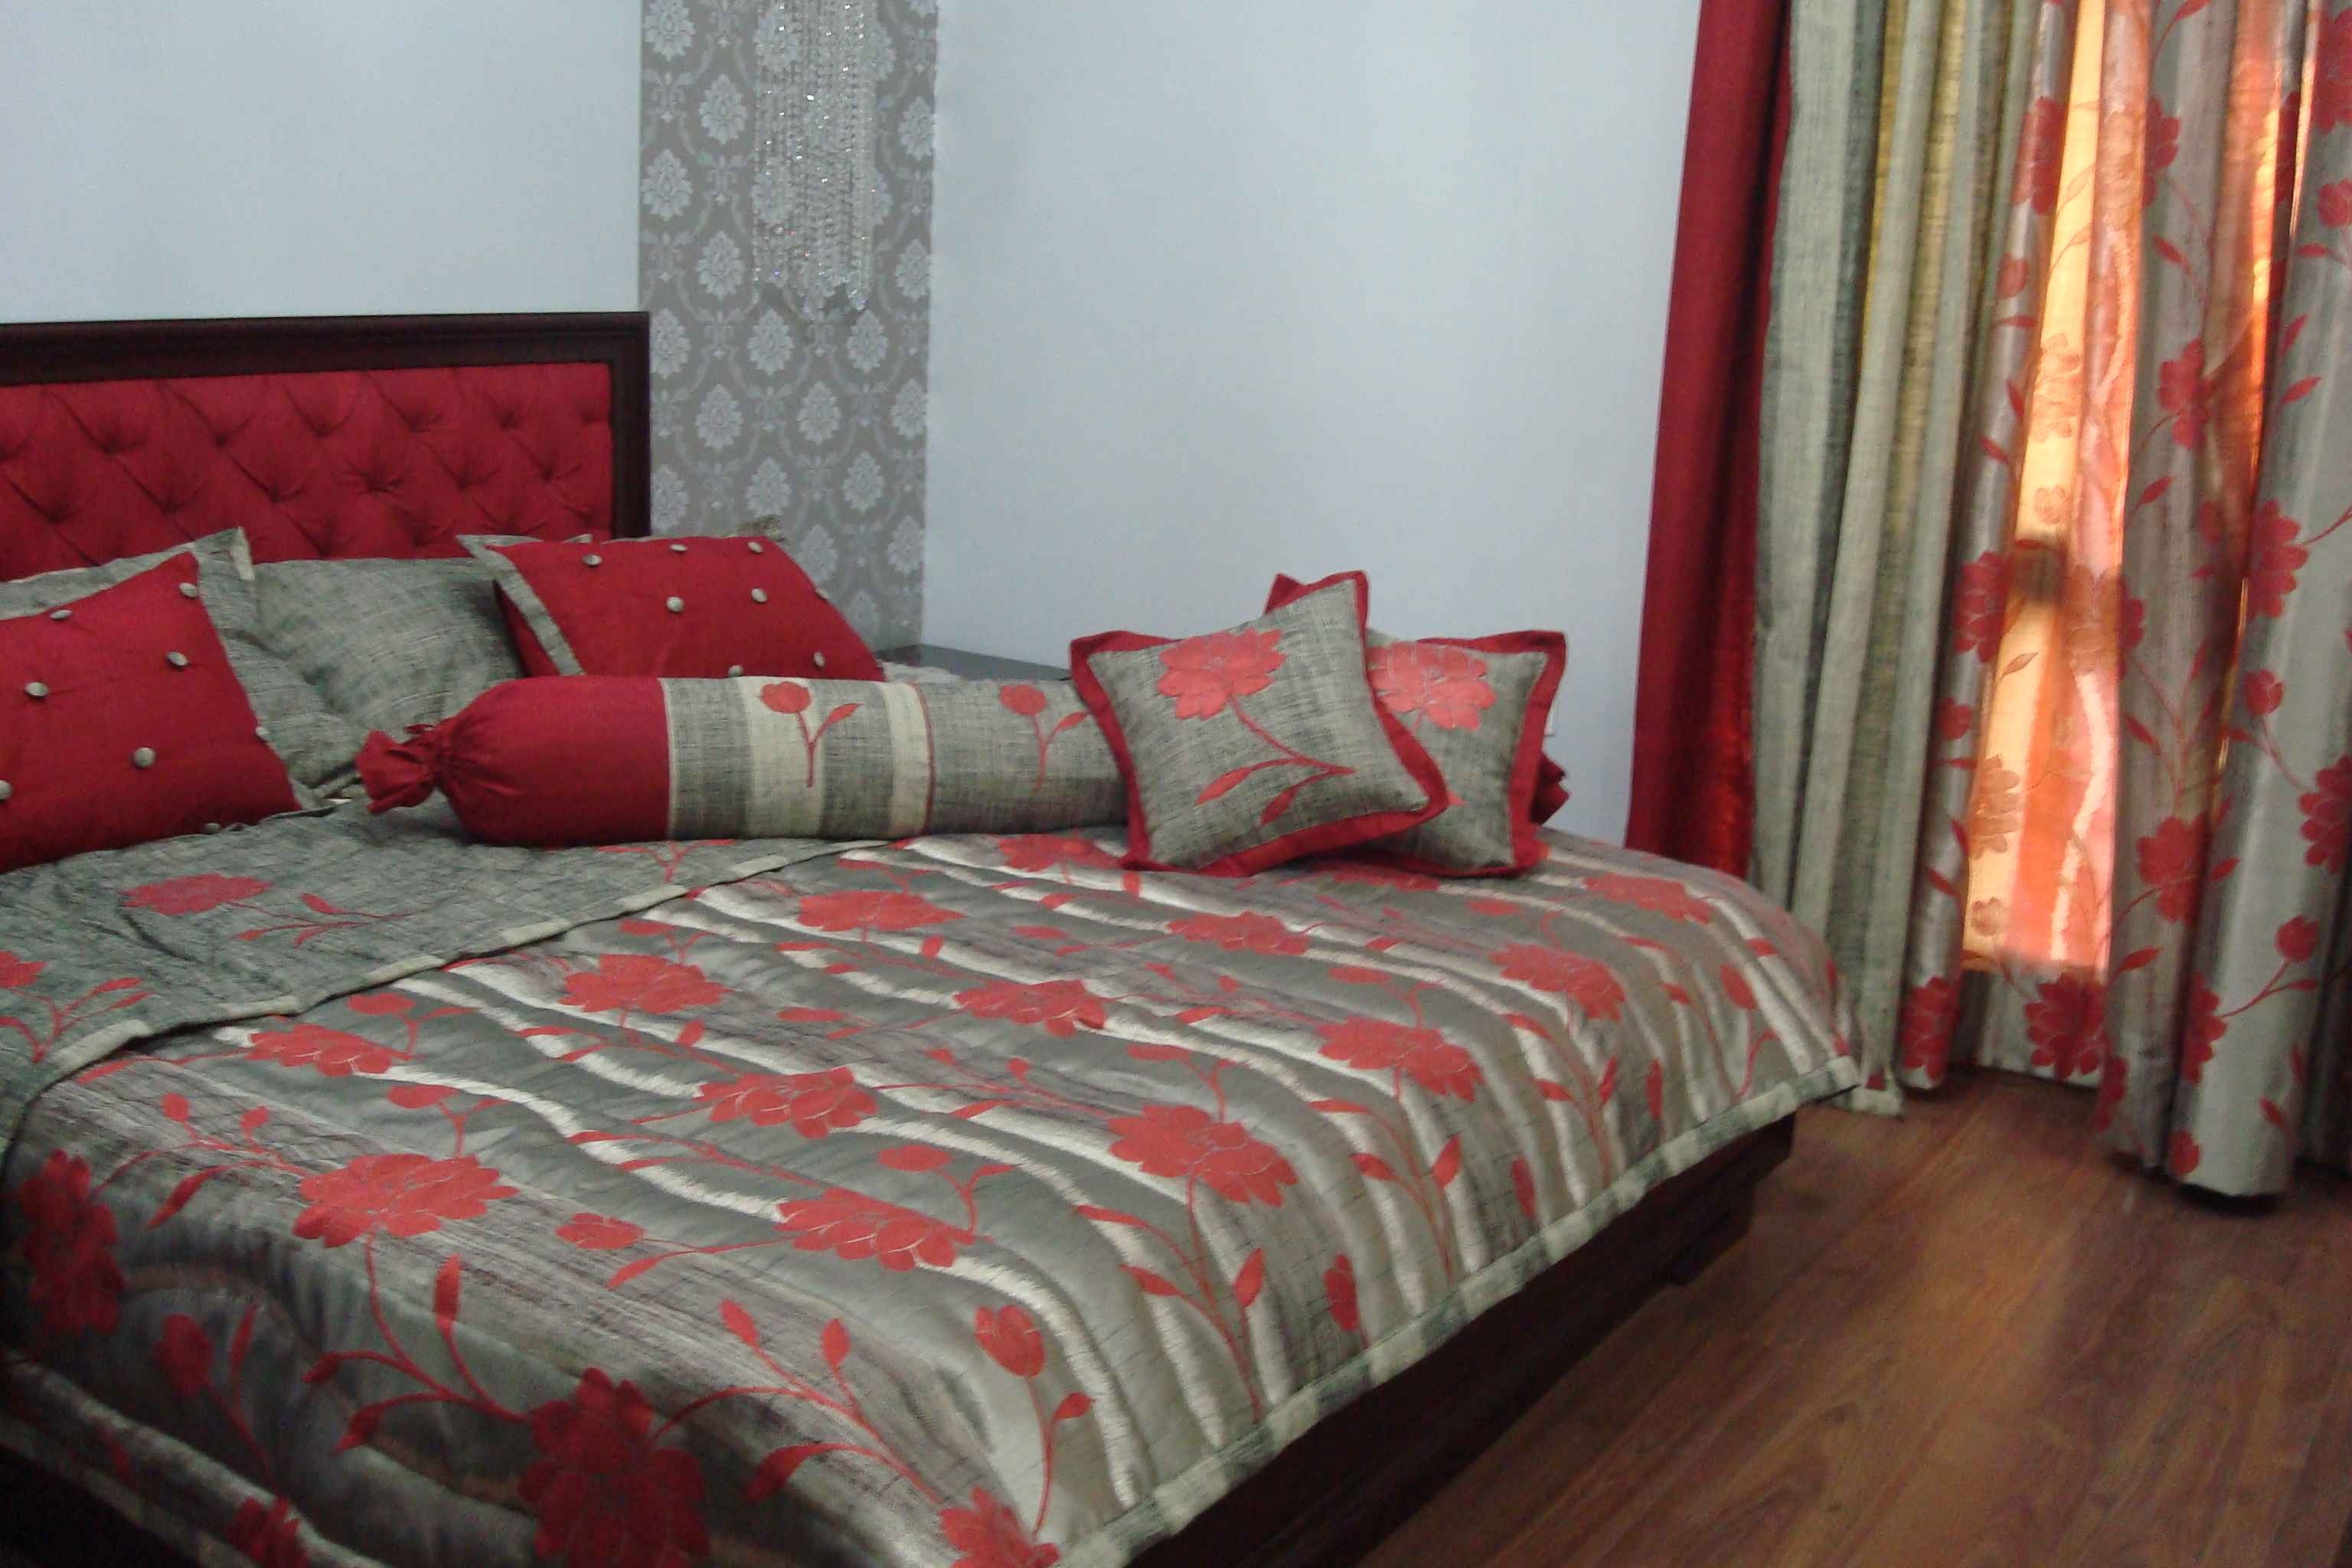 Interior designs delhi design ideas new delhi india for Bedroom designs delhi